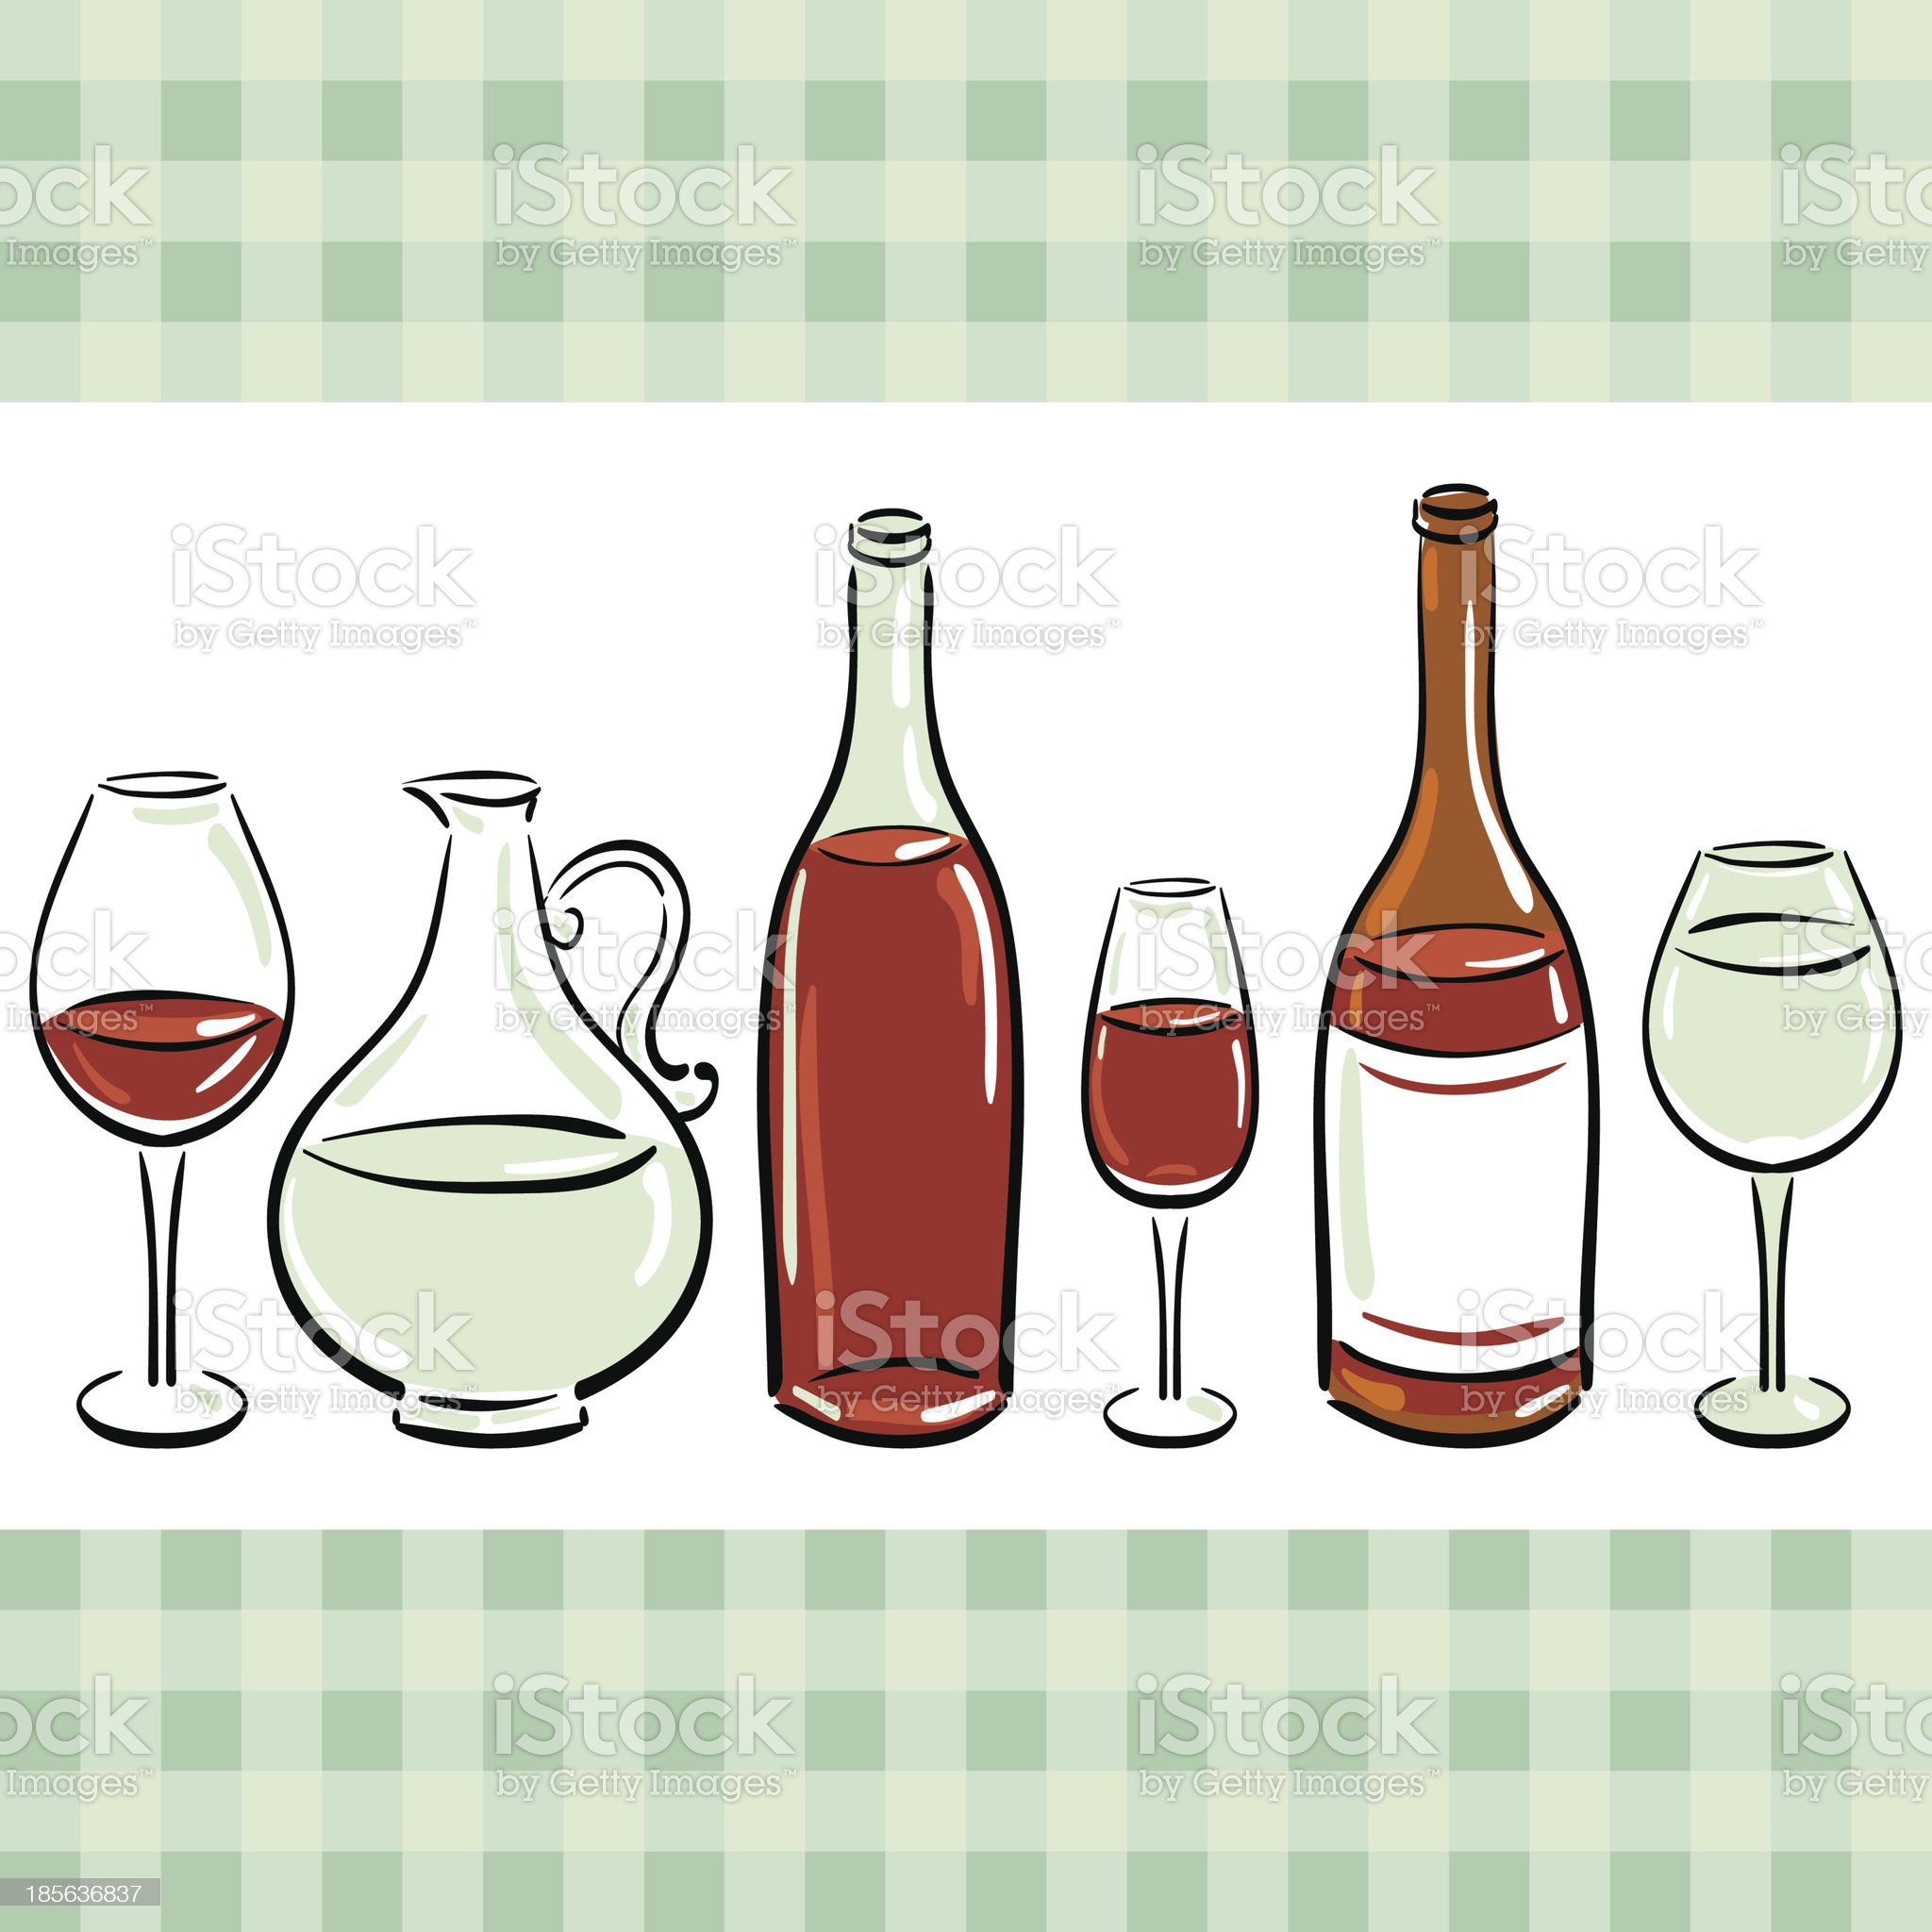 Drinks background royalty-free stock vector art